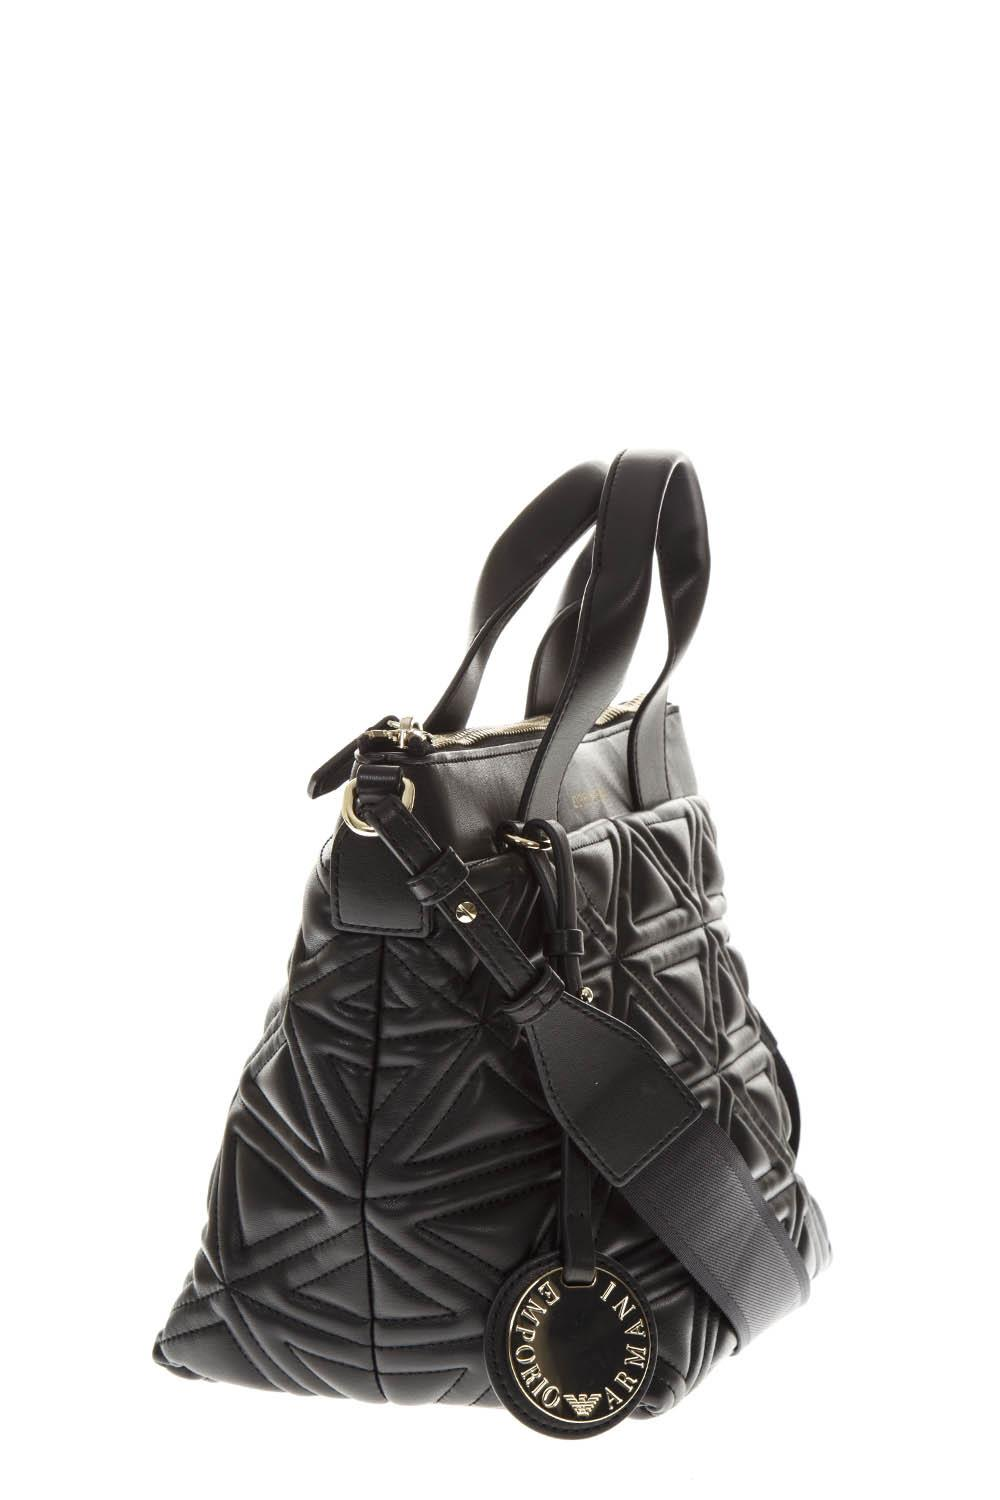 BLACK FAUX LEATHER QUILTED HANDBAG FW 2018 - EMPORIO ... 738477dee3f81